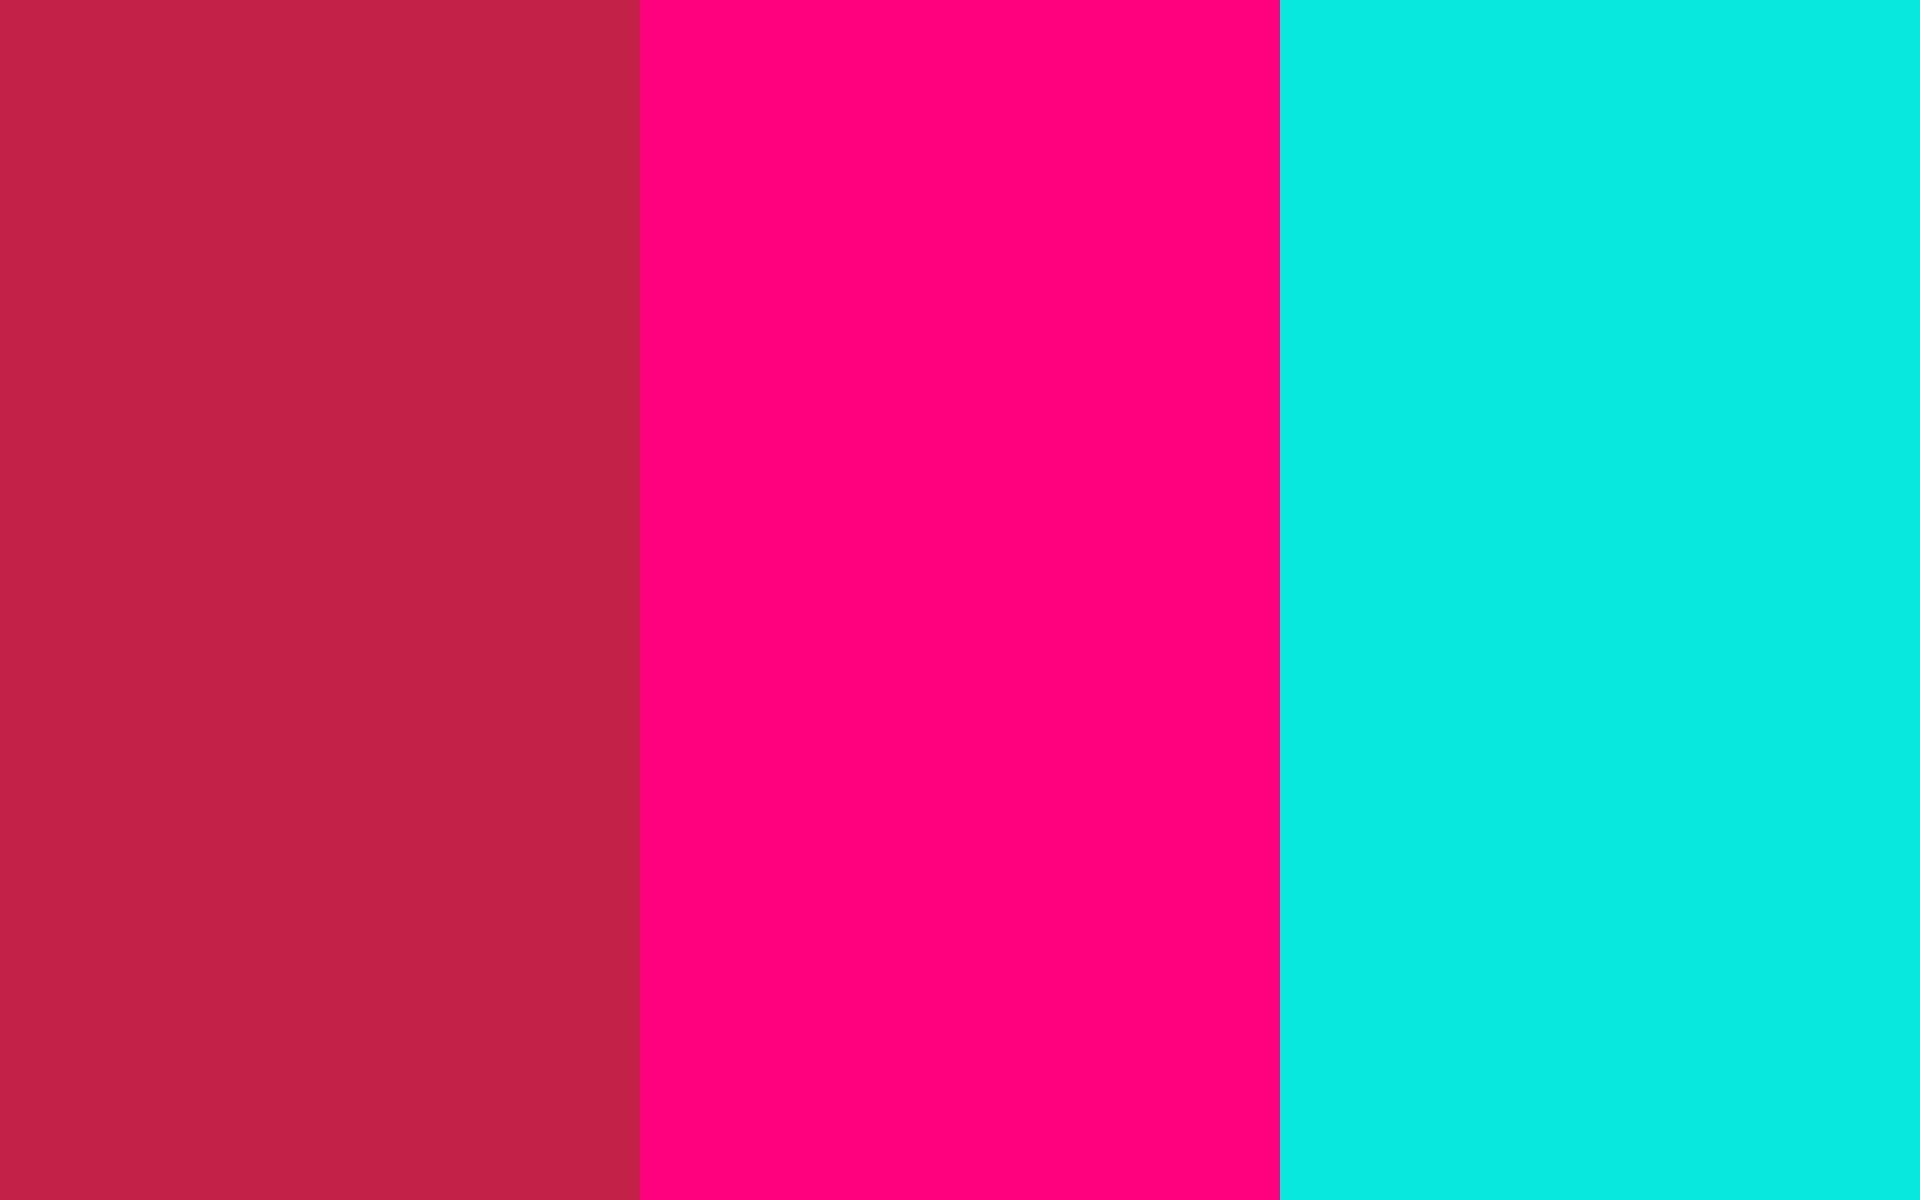 Bright neon pink background